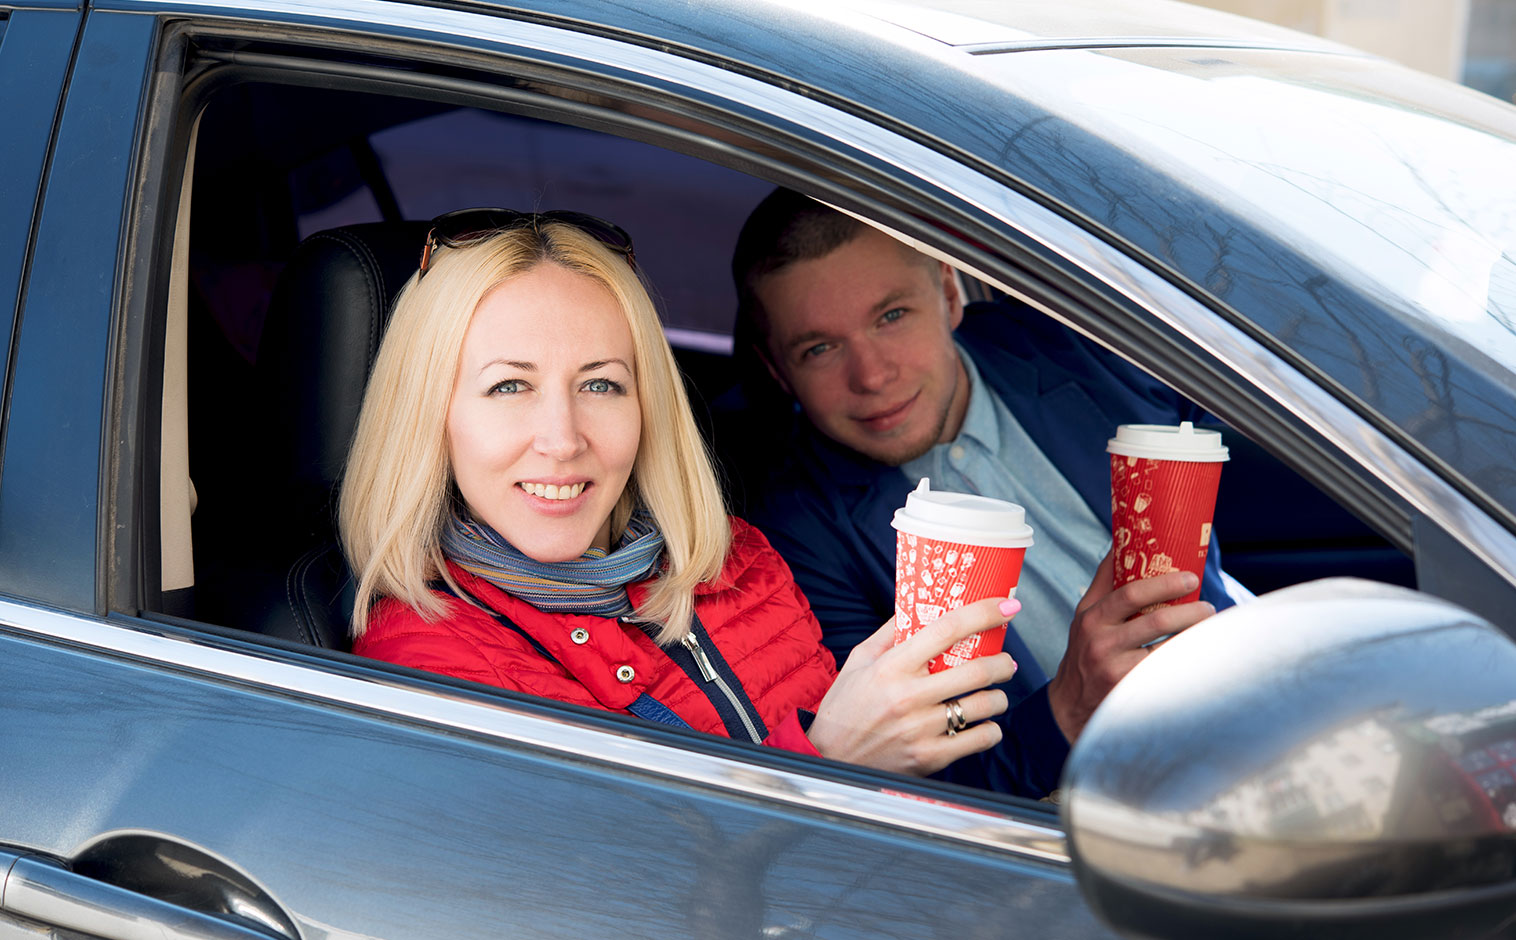 buying coffee with car mobile payments